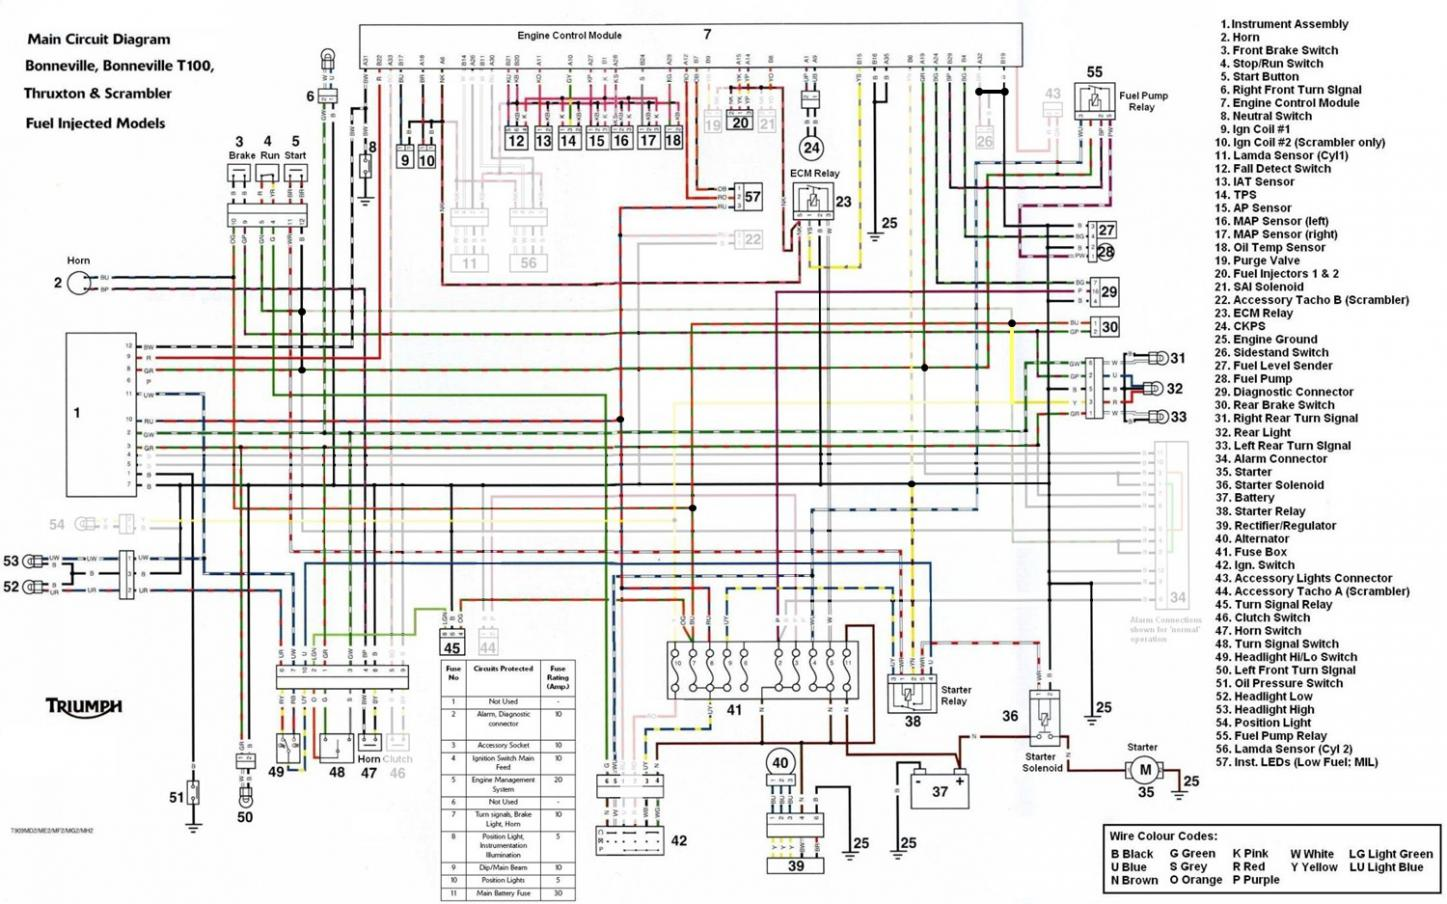 Wiring Diagram Triumph Tc910